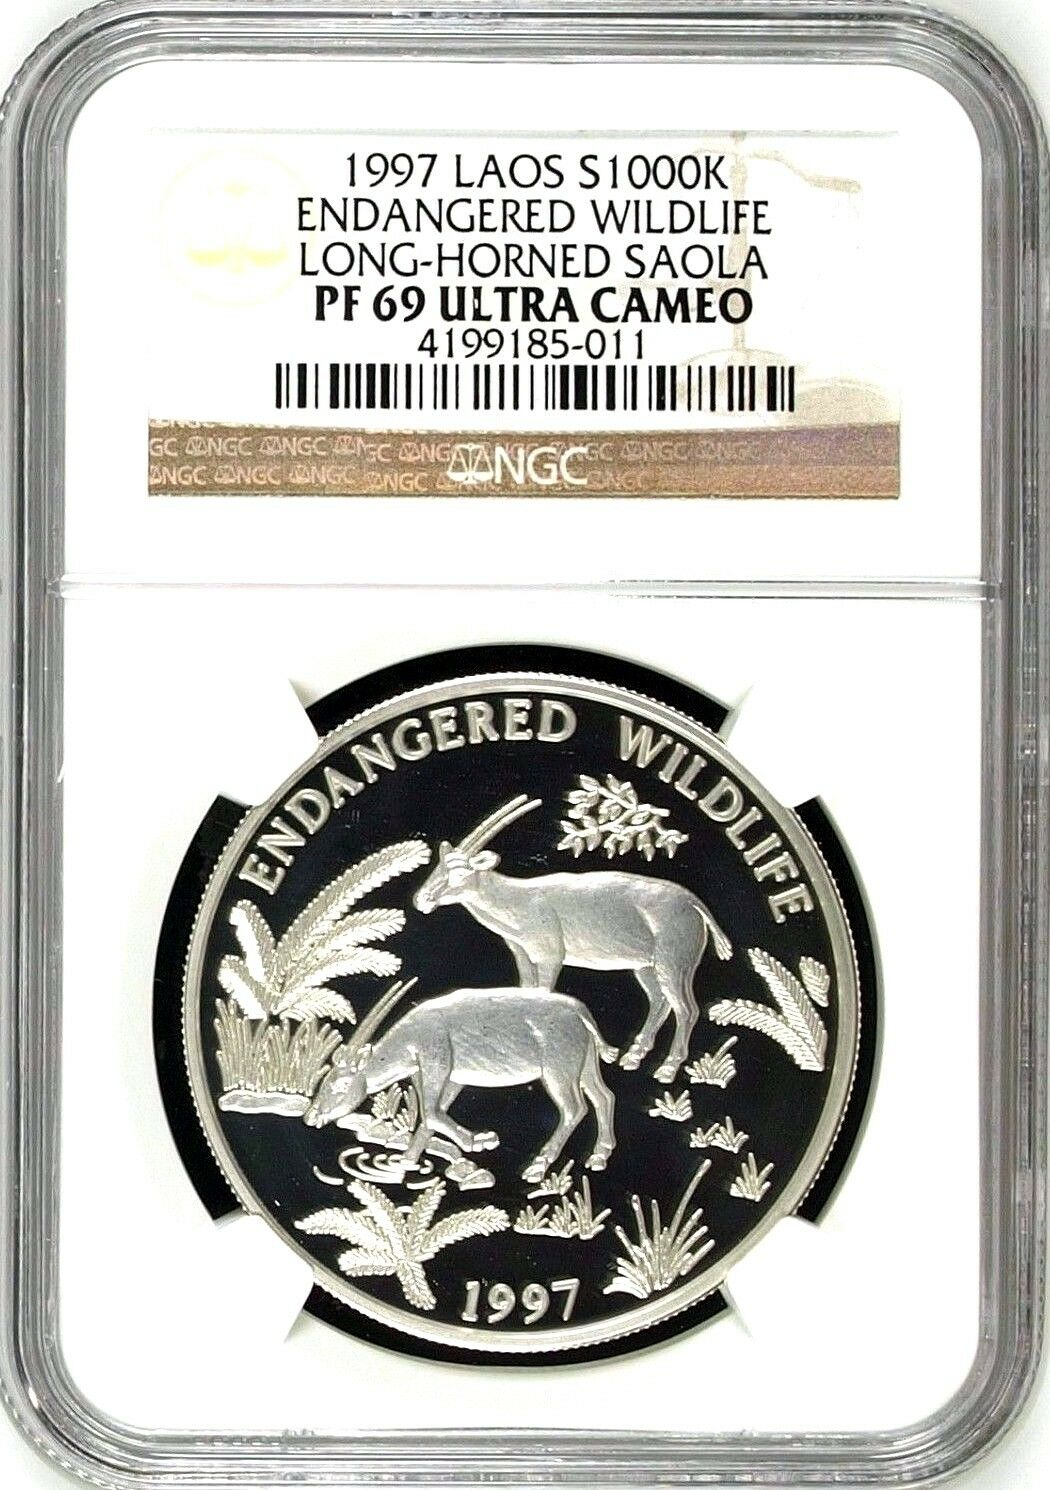 Laos 1997 Silver 1000 Kip Endangered Wildlife Long Horned Saola NGC PF69